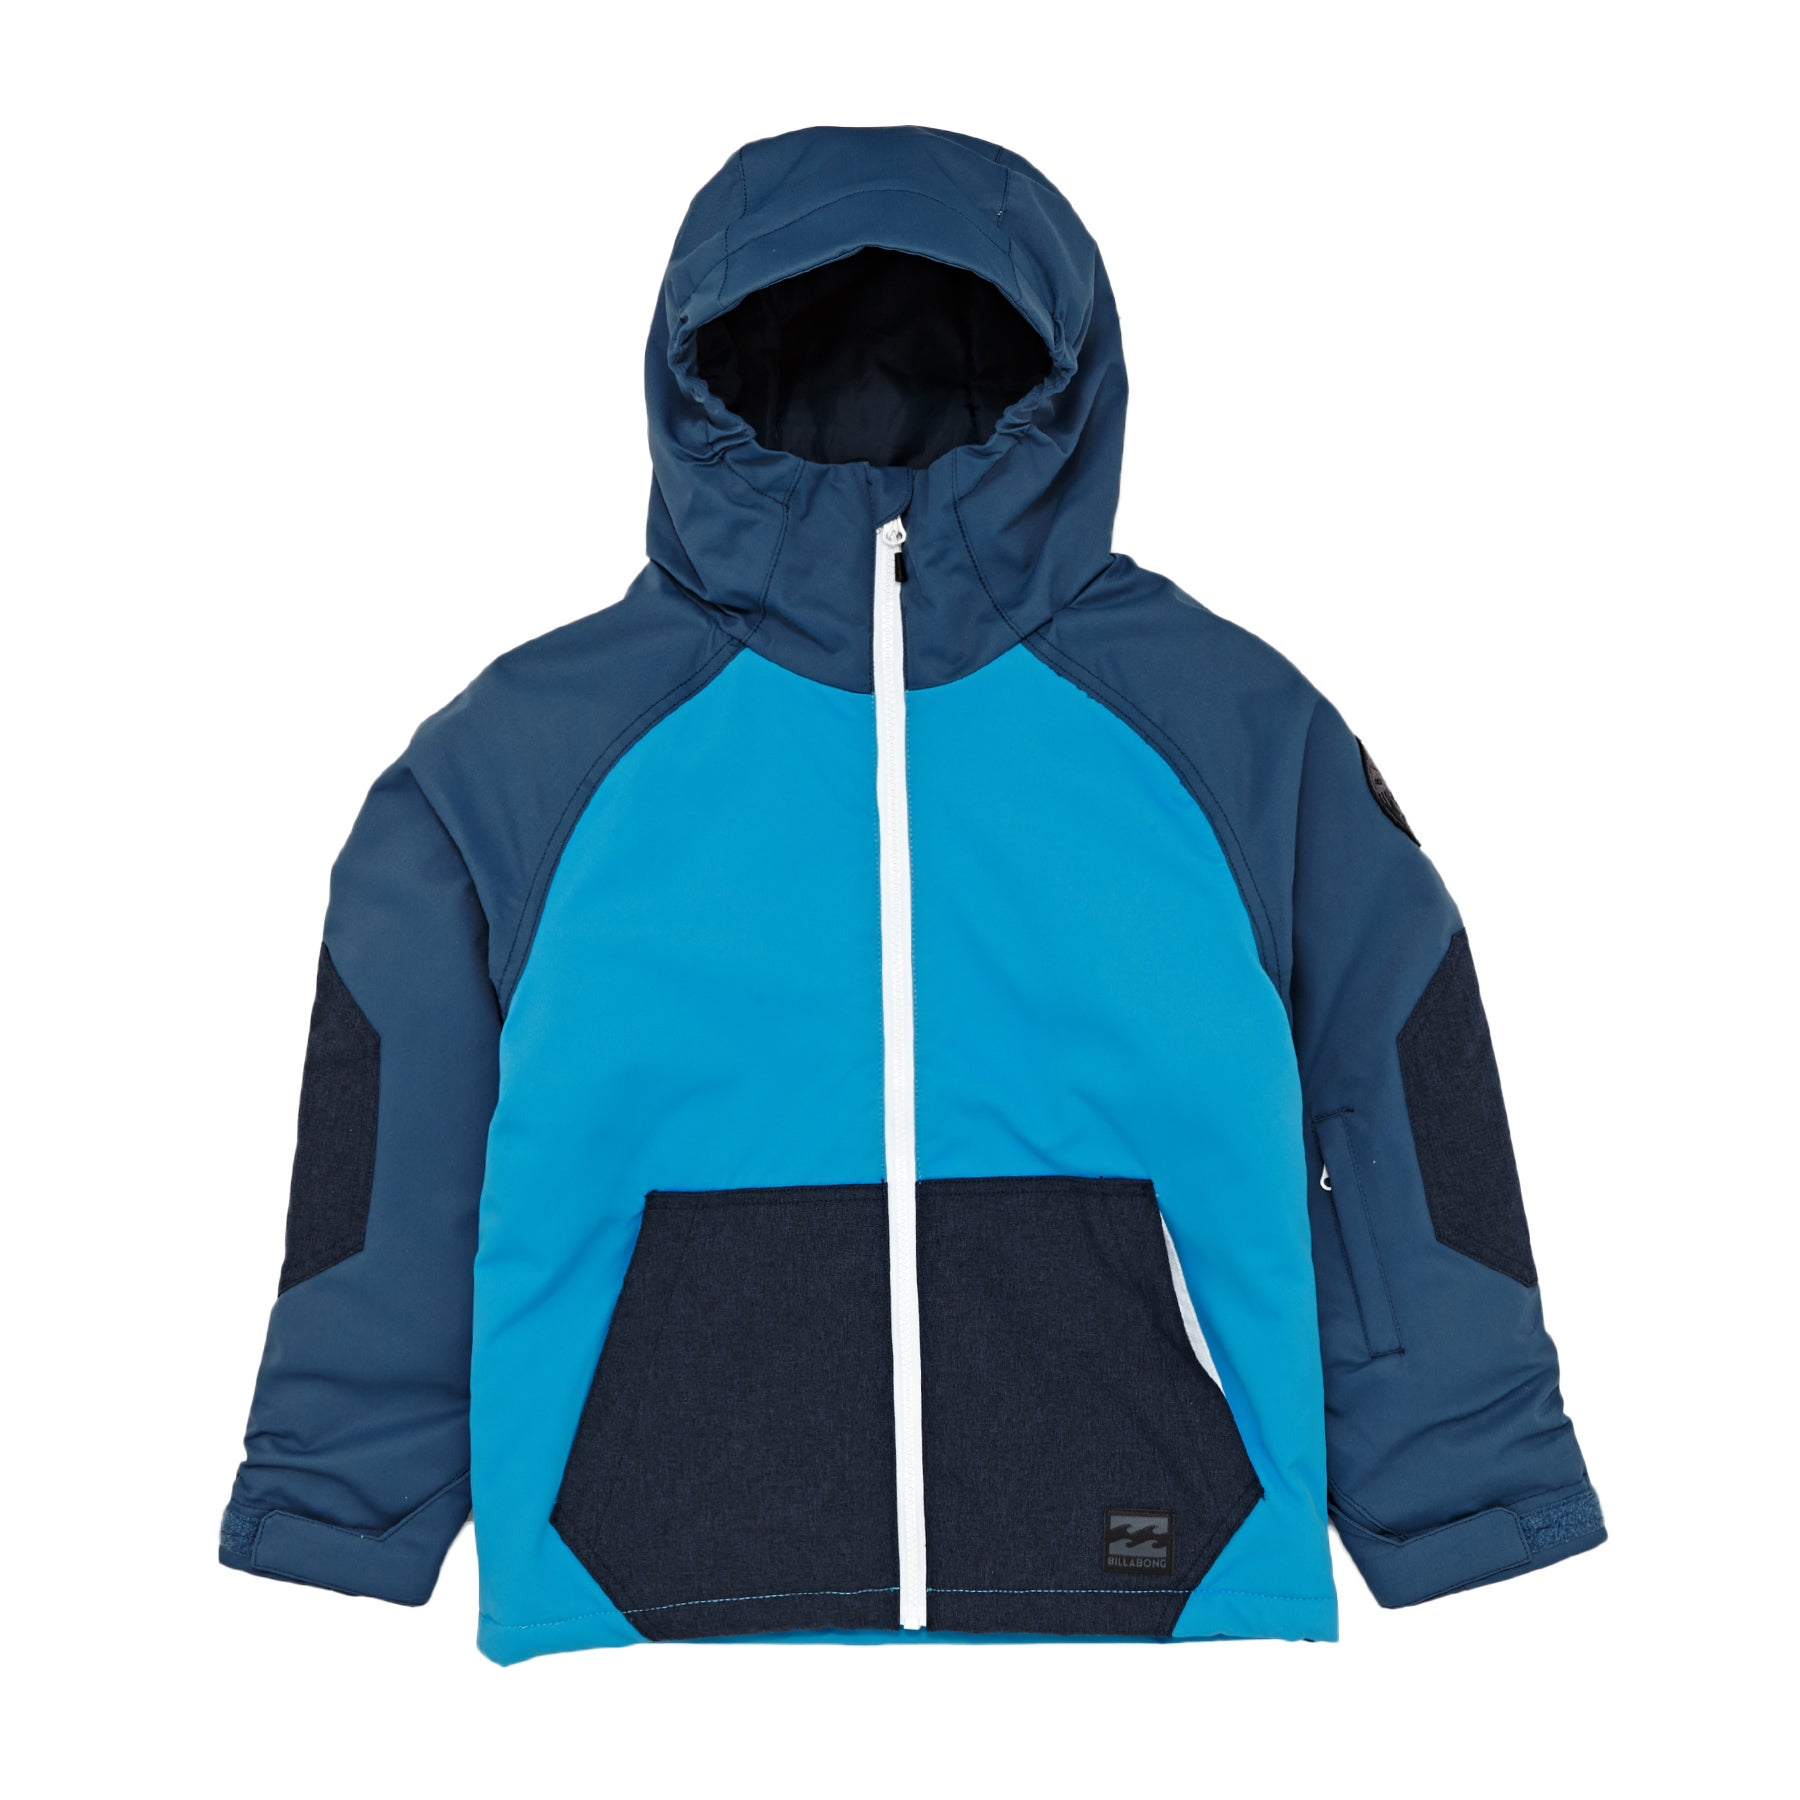 805a43df7 Billabong Kids All Day Boys Snow Jacket available from Surfdome